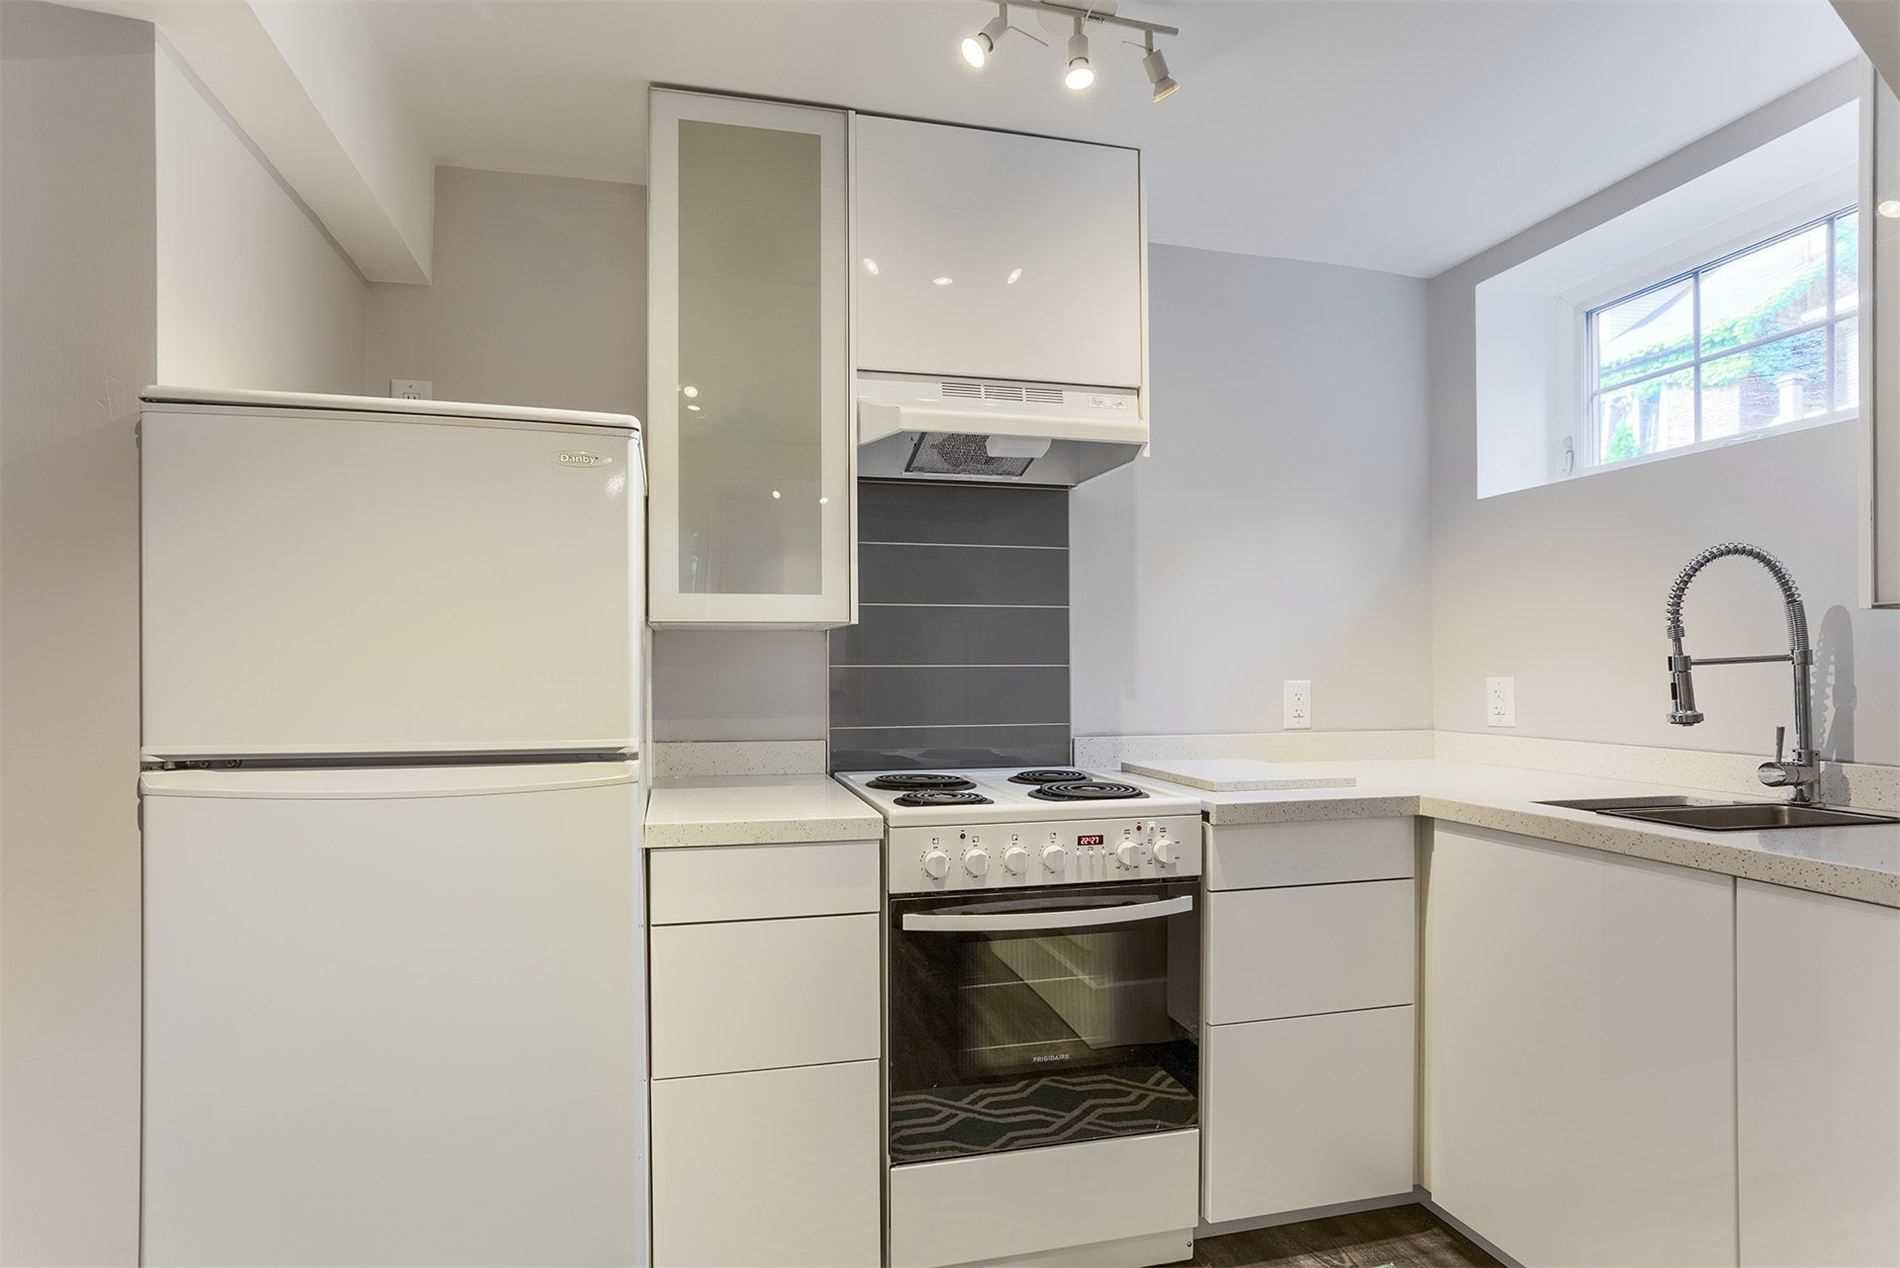 Photo 7: Photos: 53 Pearson Avenue in Toronto: Roncesvalles House (Other) for lease (Toronto W01)  : MLS®# W4816830